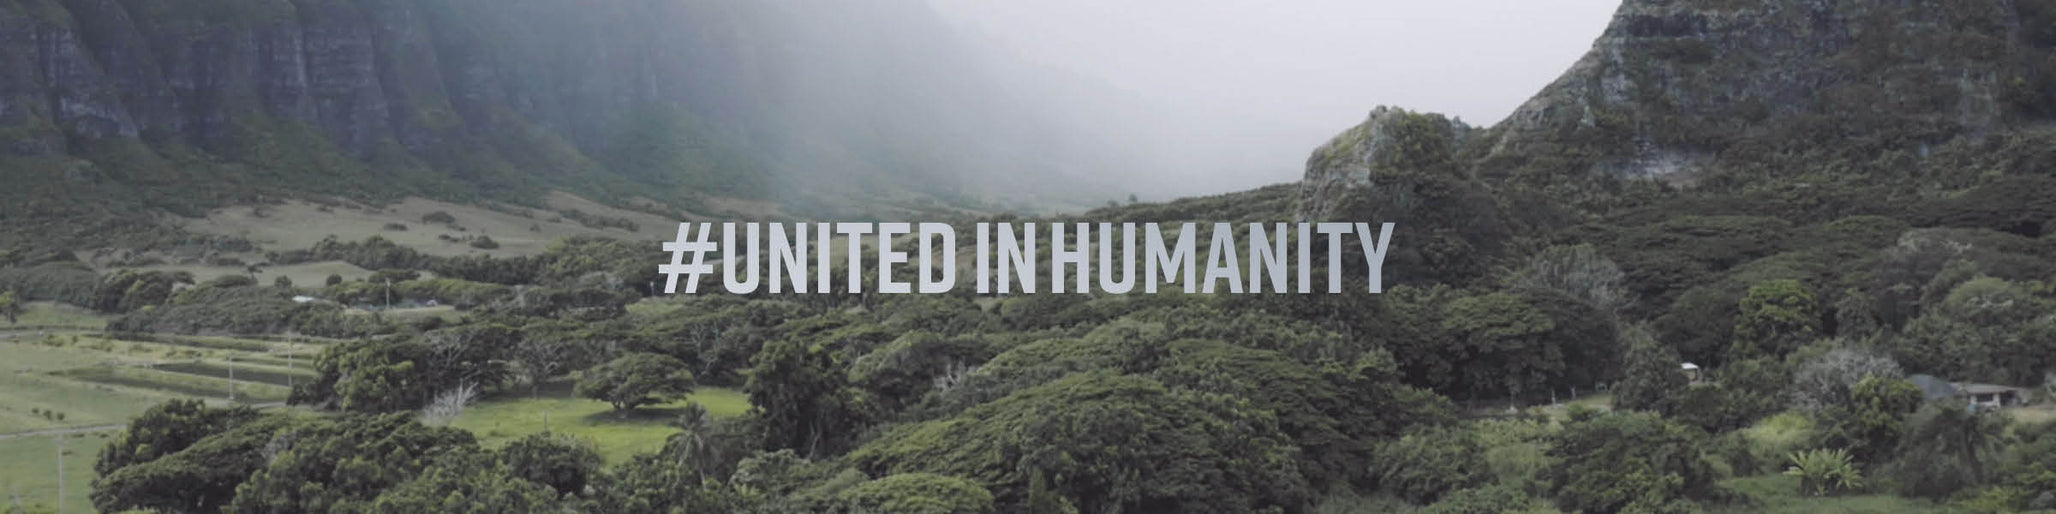 Ryzon United In Humanity Project // Manresa Header Image